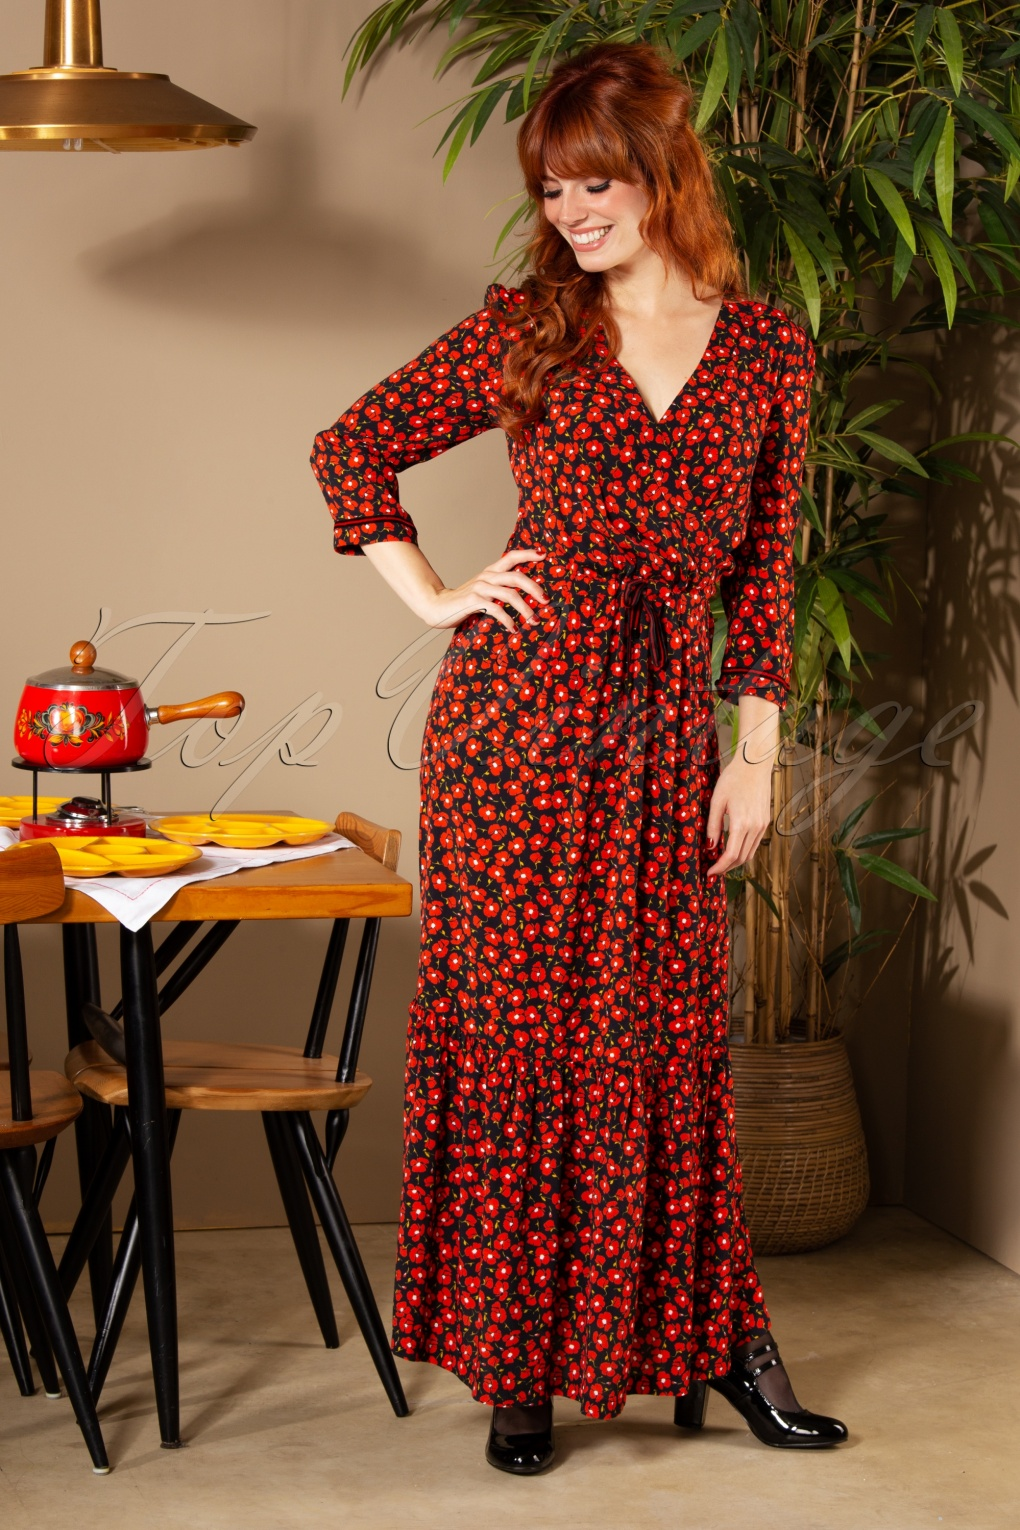 Elegance A La Francaise 70s robe réusitte maxi dress in black and red